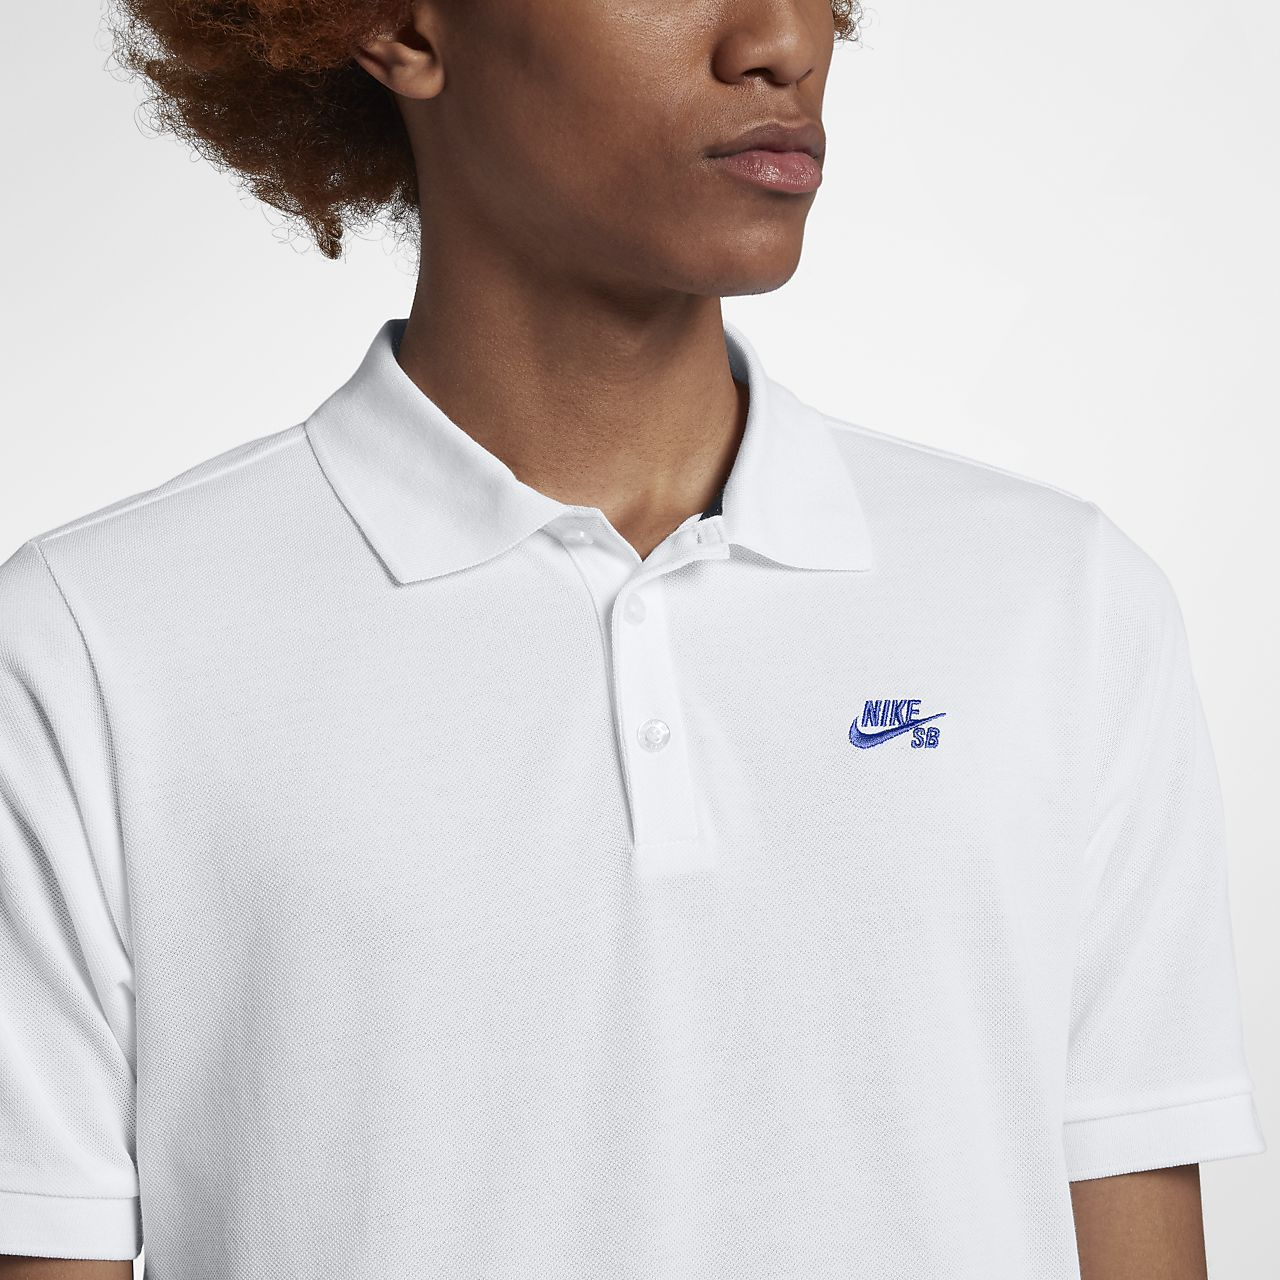 0ad7b143 Nike SB Dri-FIT Pique Men's Polo. Nike.com CA